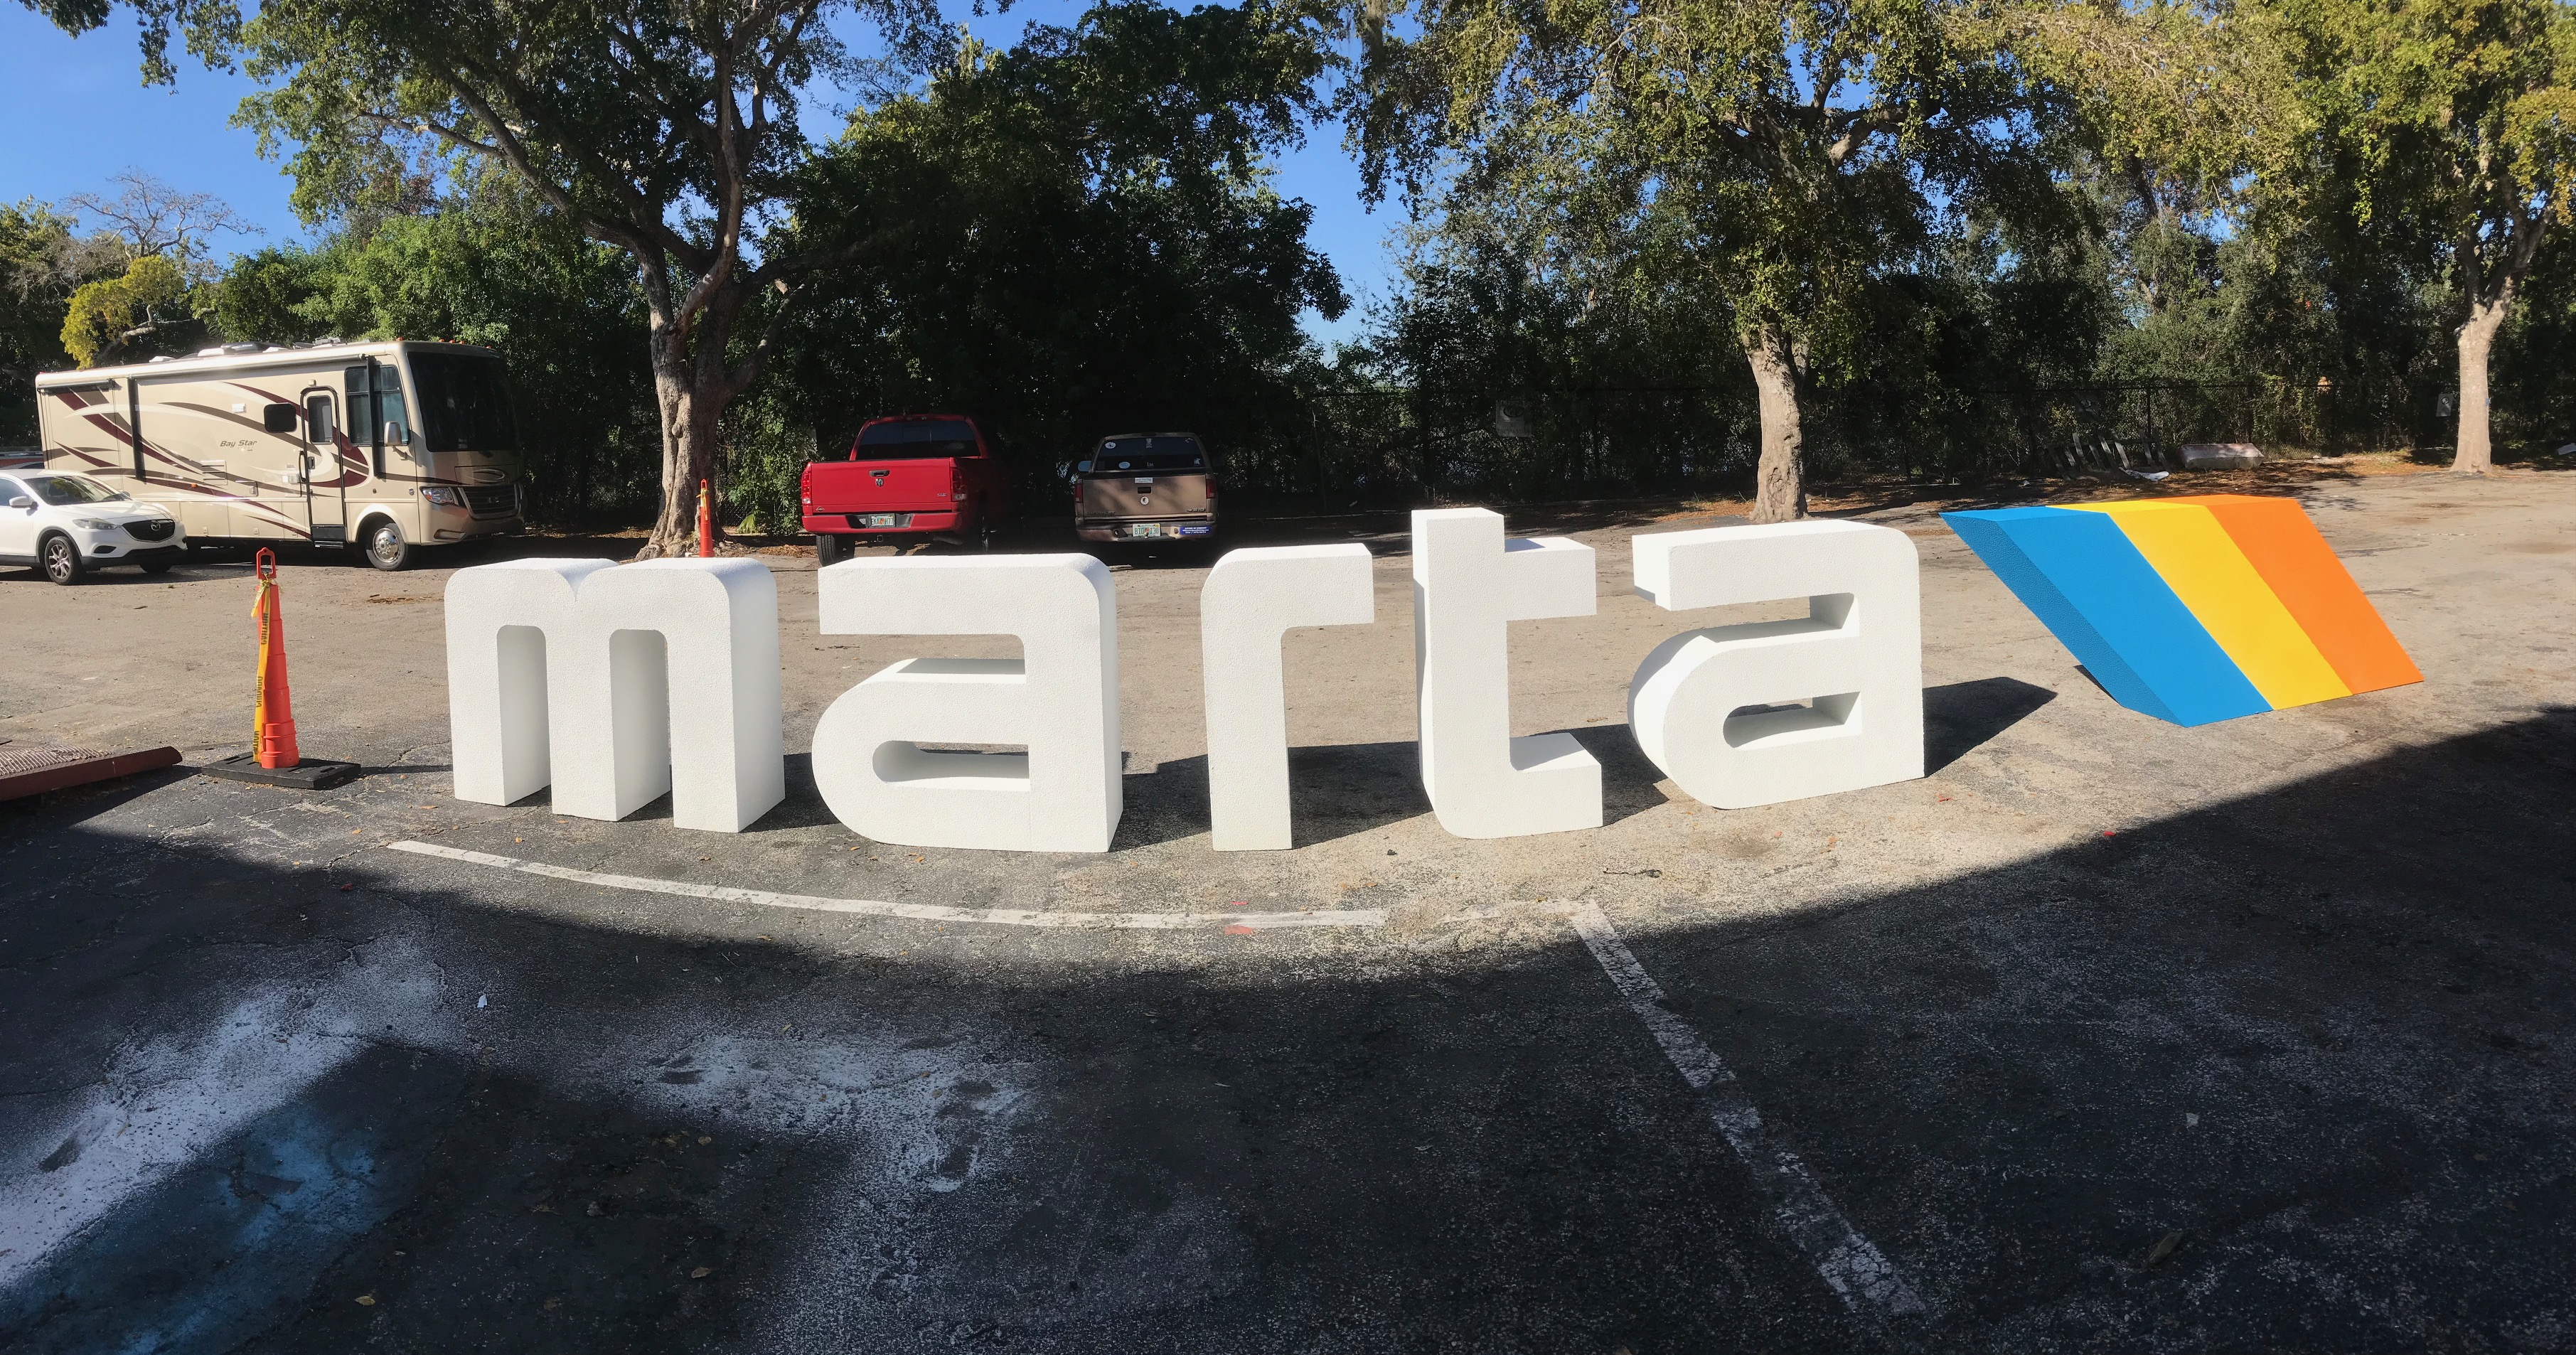 3D Foam Letters and Props for Indoor/Outdoor Display | FireSign Inc